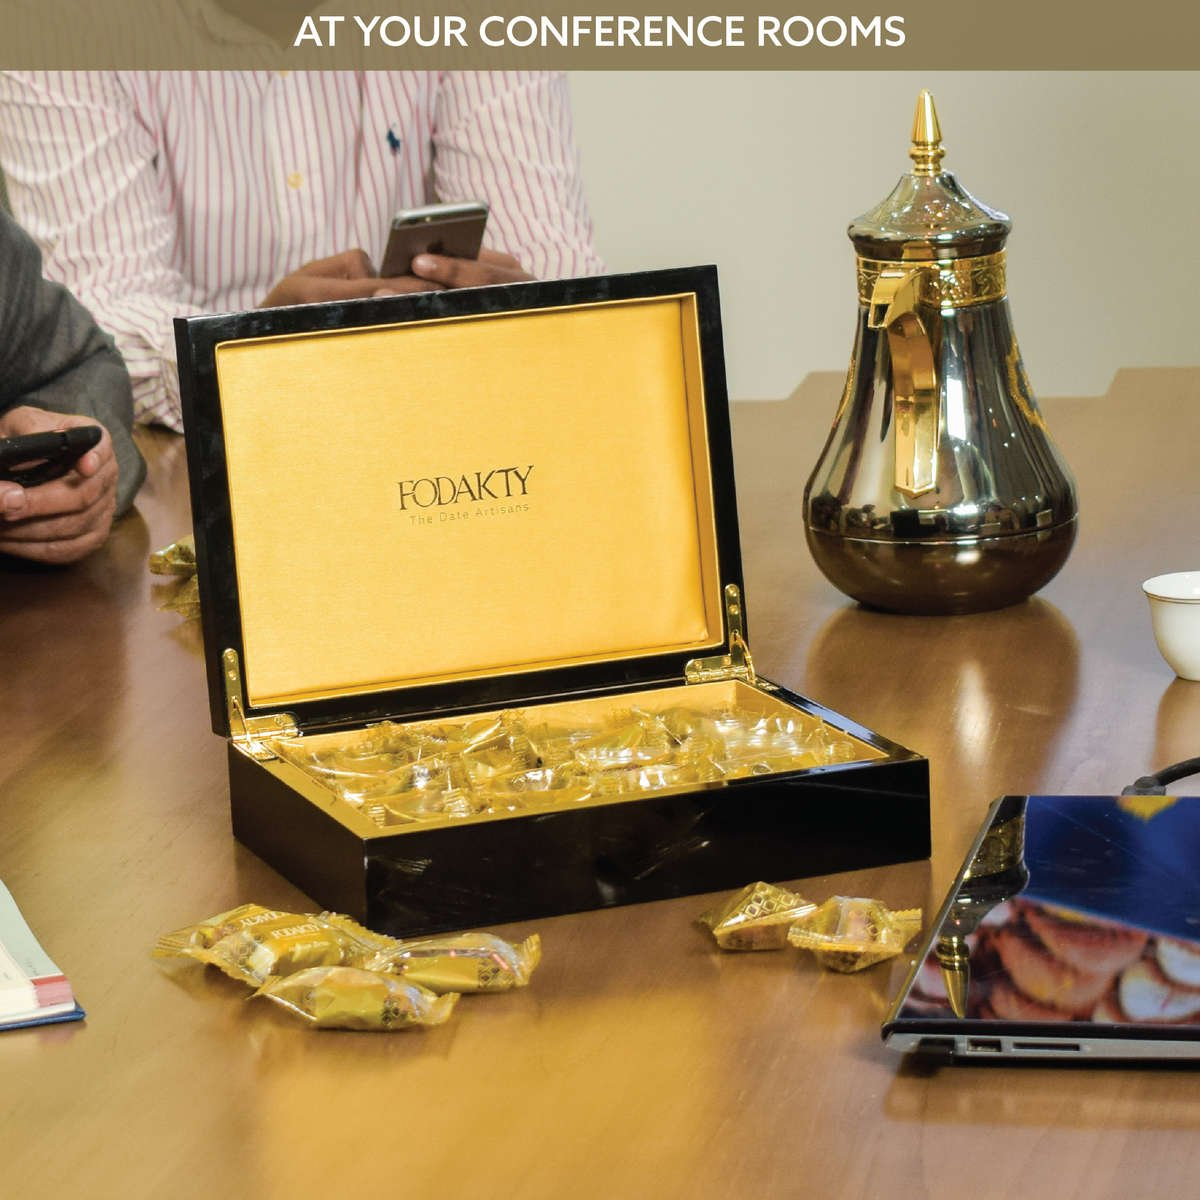 Fodakty dates subscription service conference room